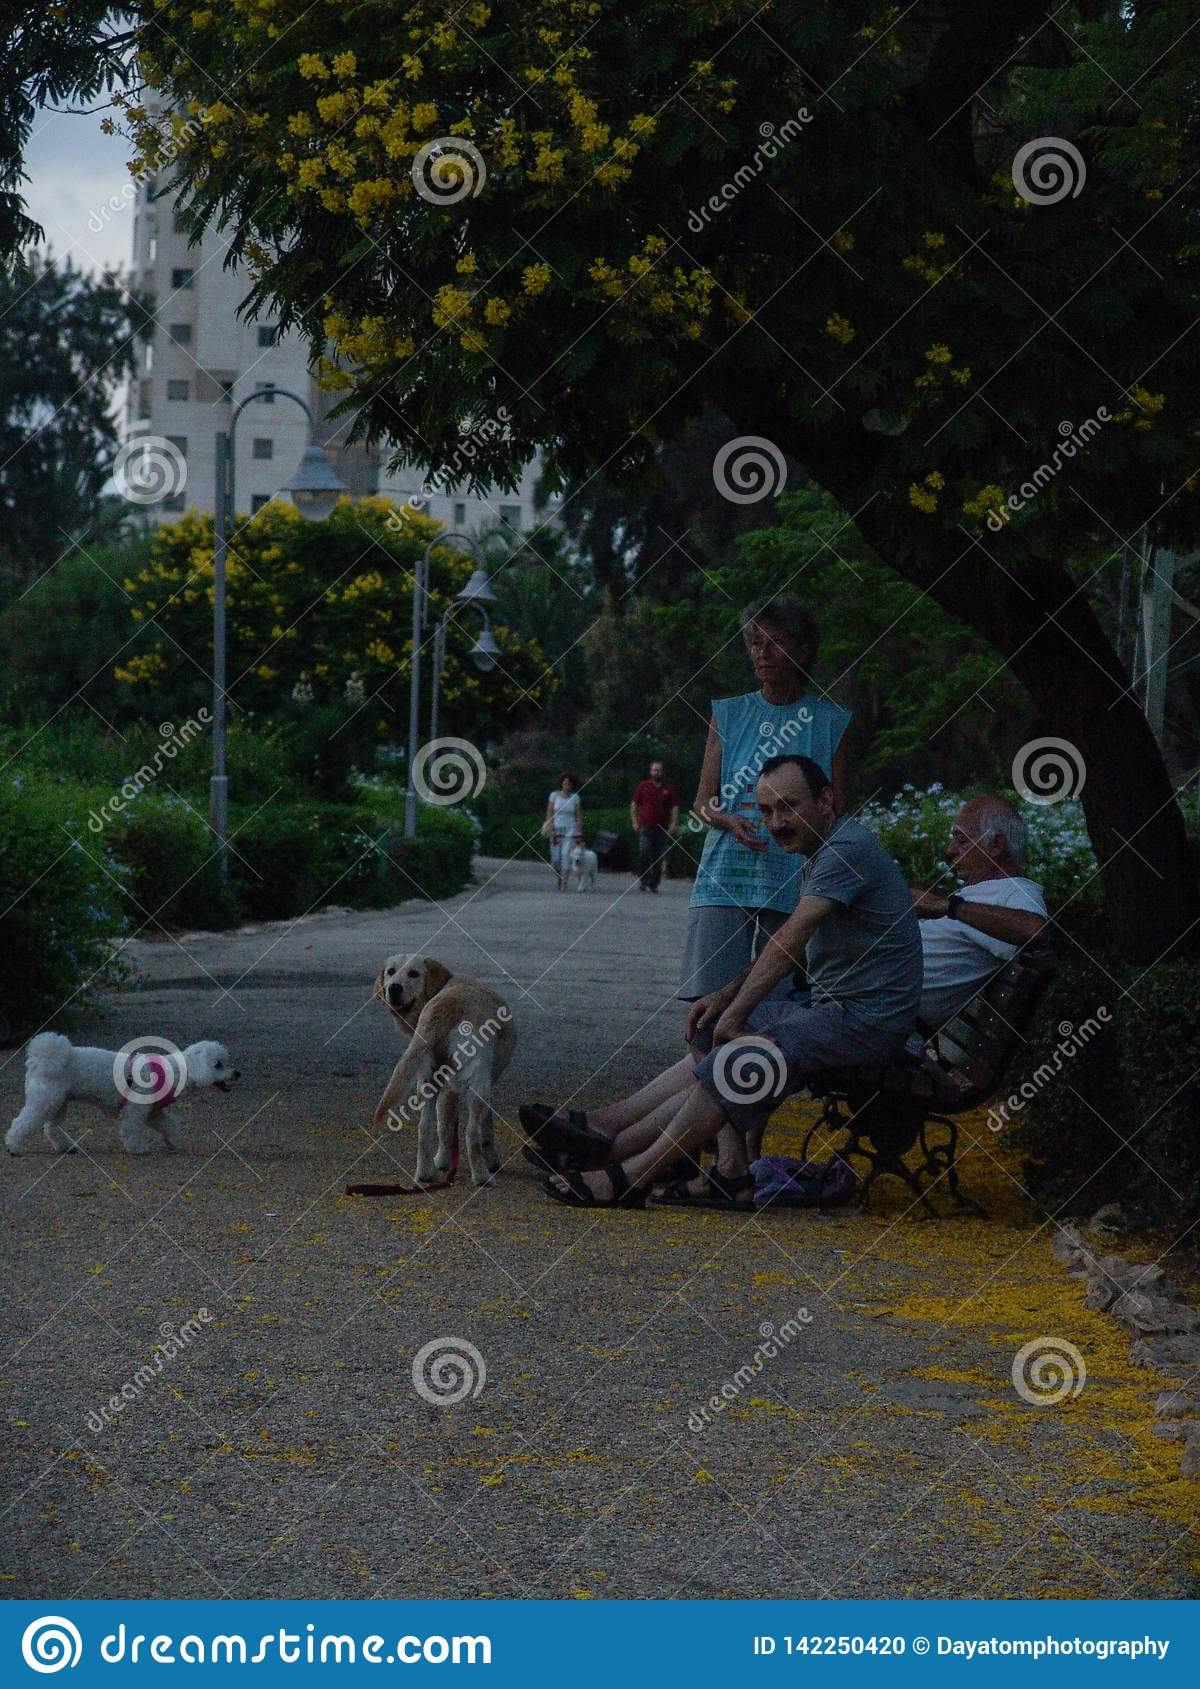 Alley park with yellow flowers blooming trees on the side, three people sitting on a bench and two dogs